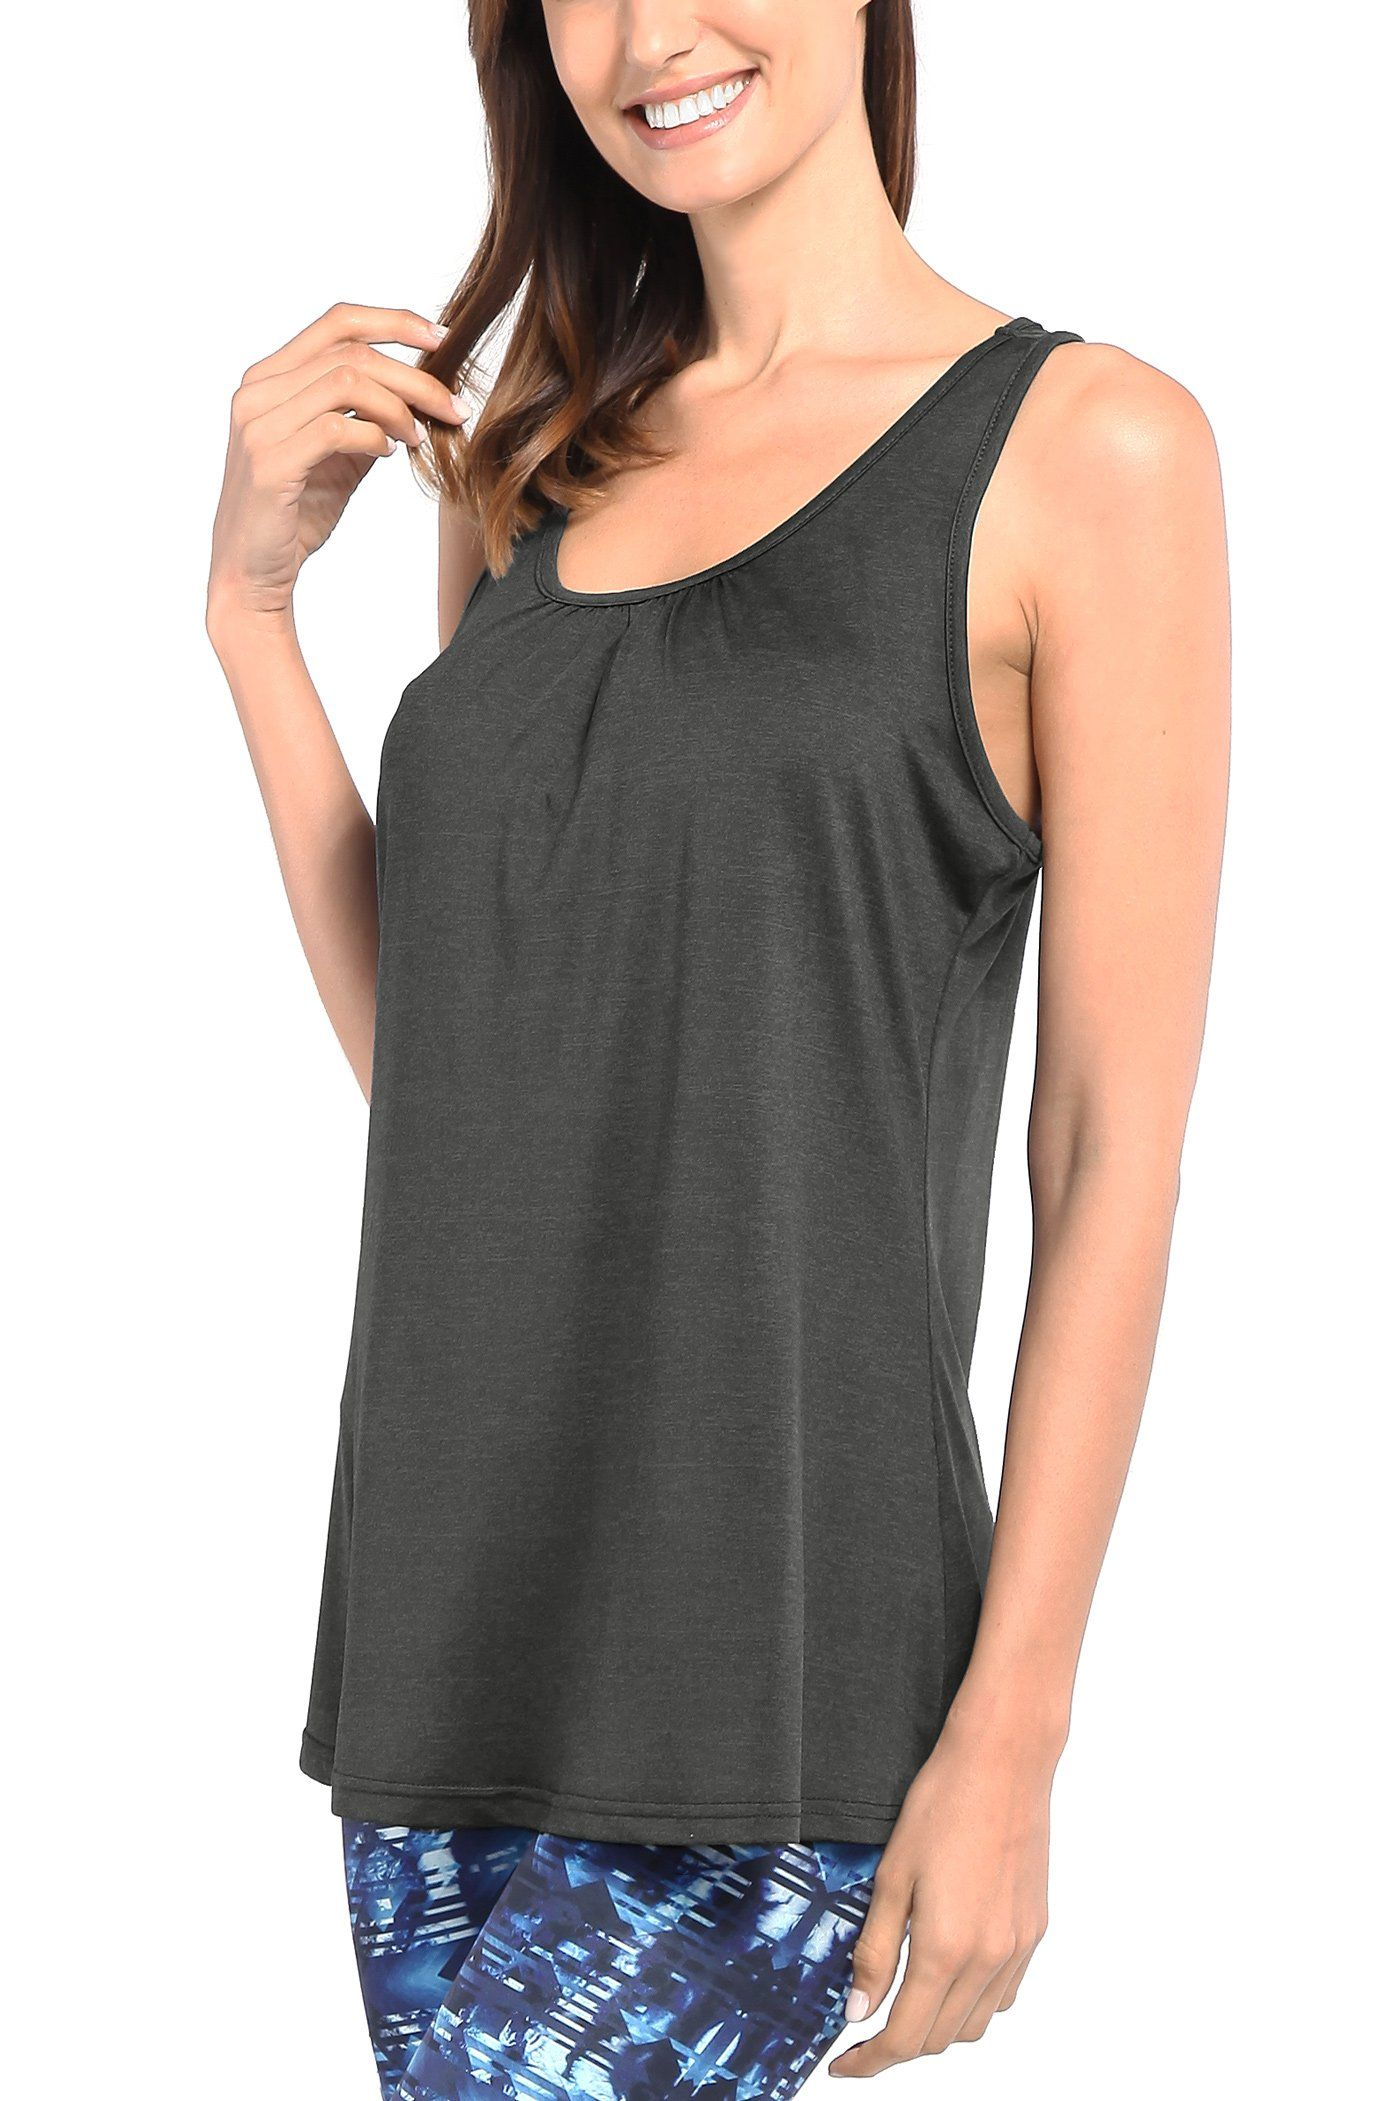 ab75a30eb42627 pregnancy workout - Nandashe Loose Fitting Tank Tops 2018 Summer Fashion  Round Collar Pure Color Burnout